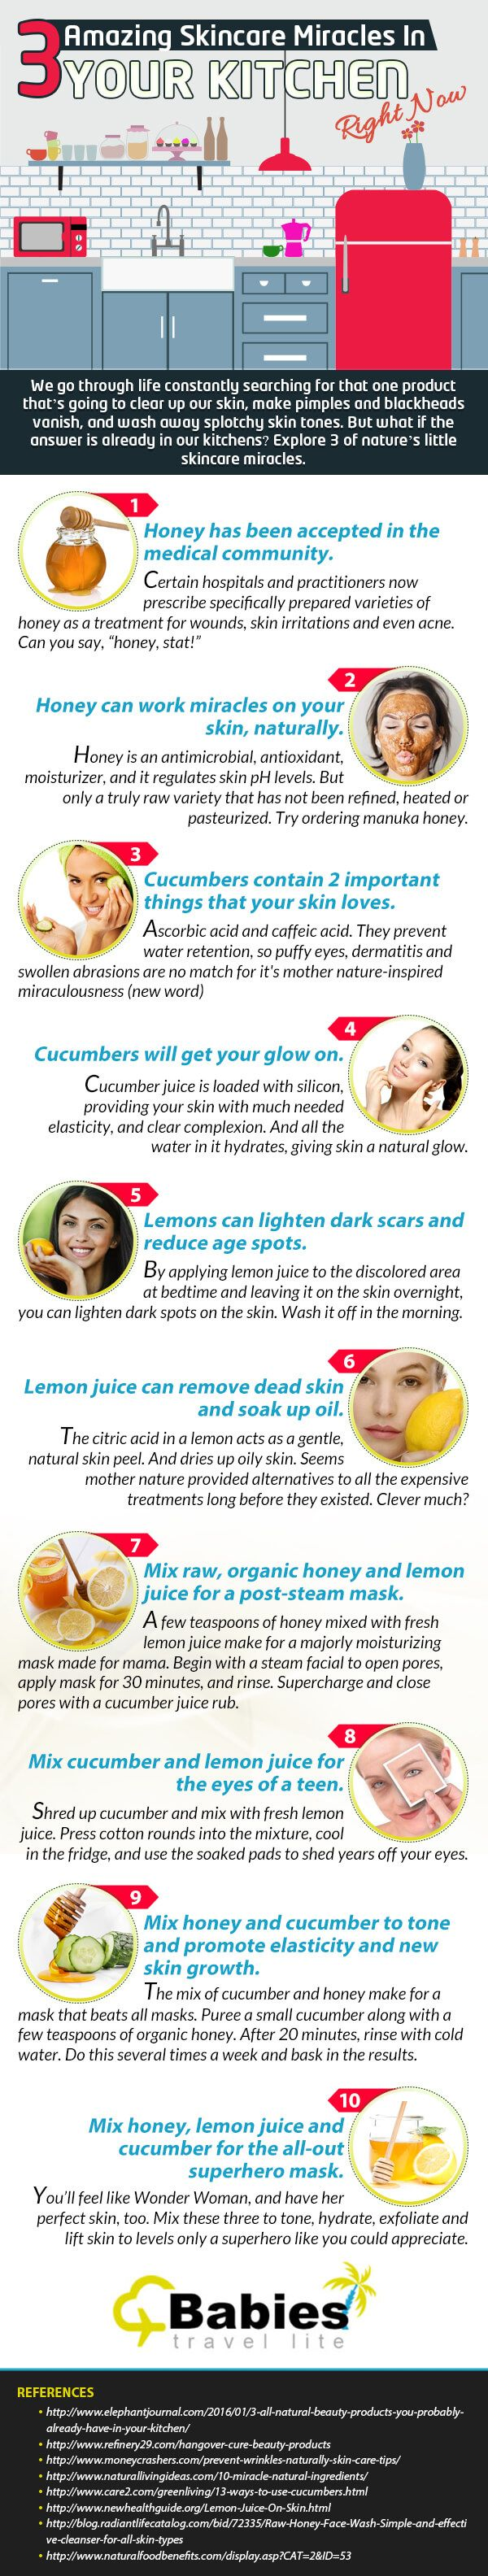 We go through life constantly searching for that one product that's going to clear up our skin, make pimples and blackheads vanish, and wash away splotchy skin tones. But what if the answer is already in our kitchens? Explore 3 of nature's little skincare miracles. #infographics #skincare